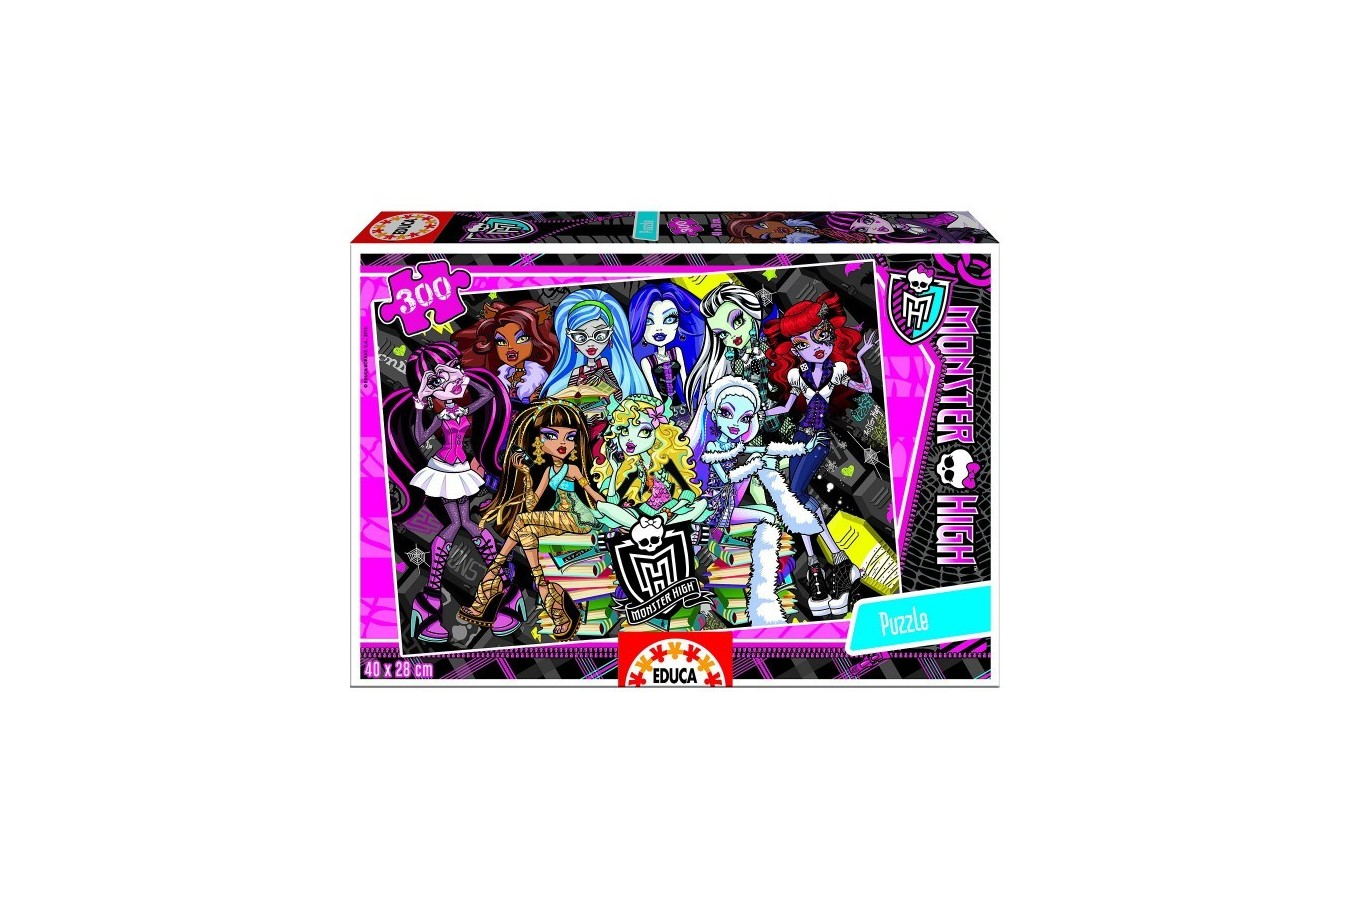 Puzzle Educa - Monster High, 300 piese (15631) imagine